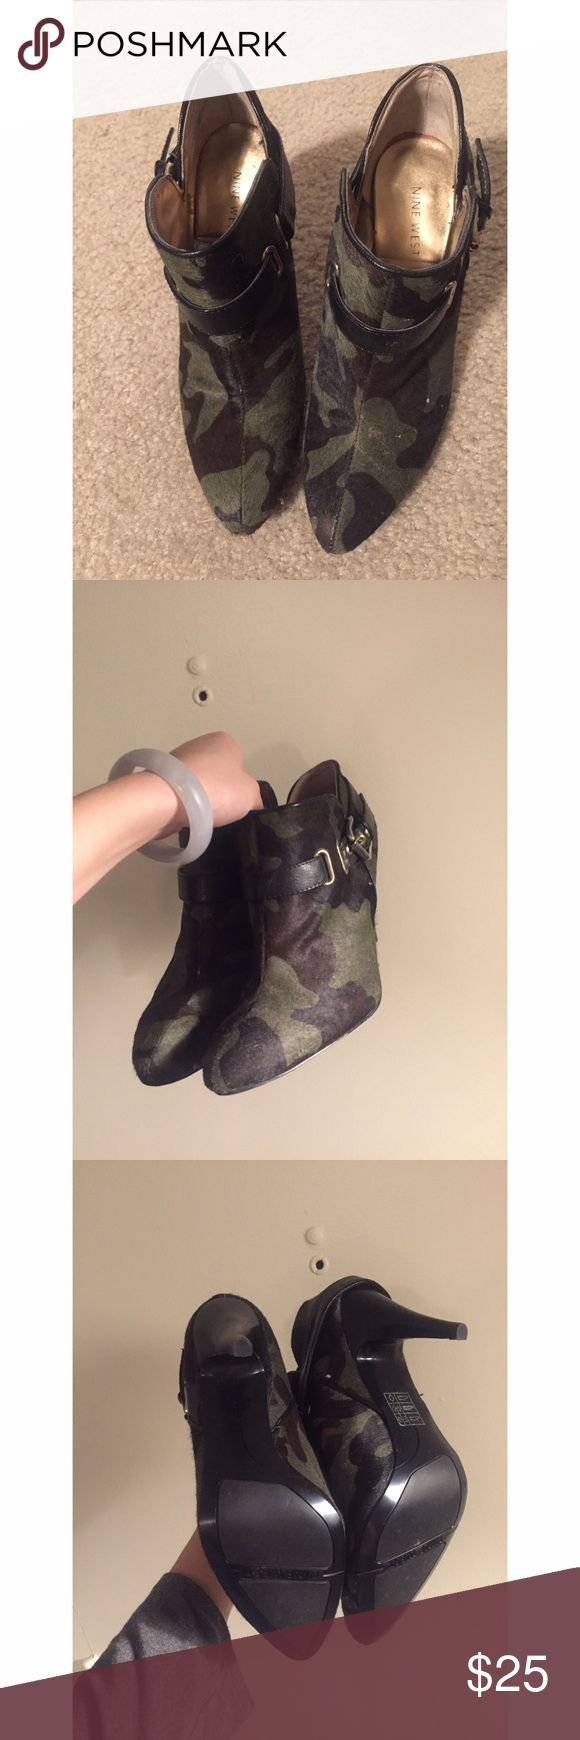 Nine West military pattern booties Gently worn; snug fit Nine West Shoes Ankle Boots & Booties